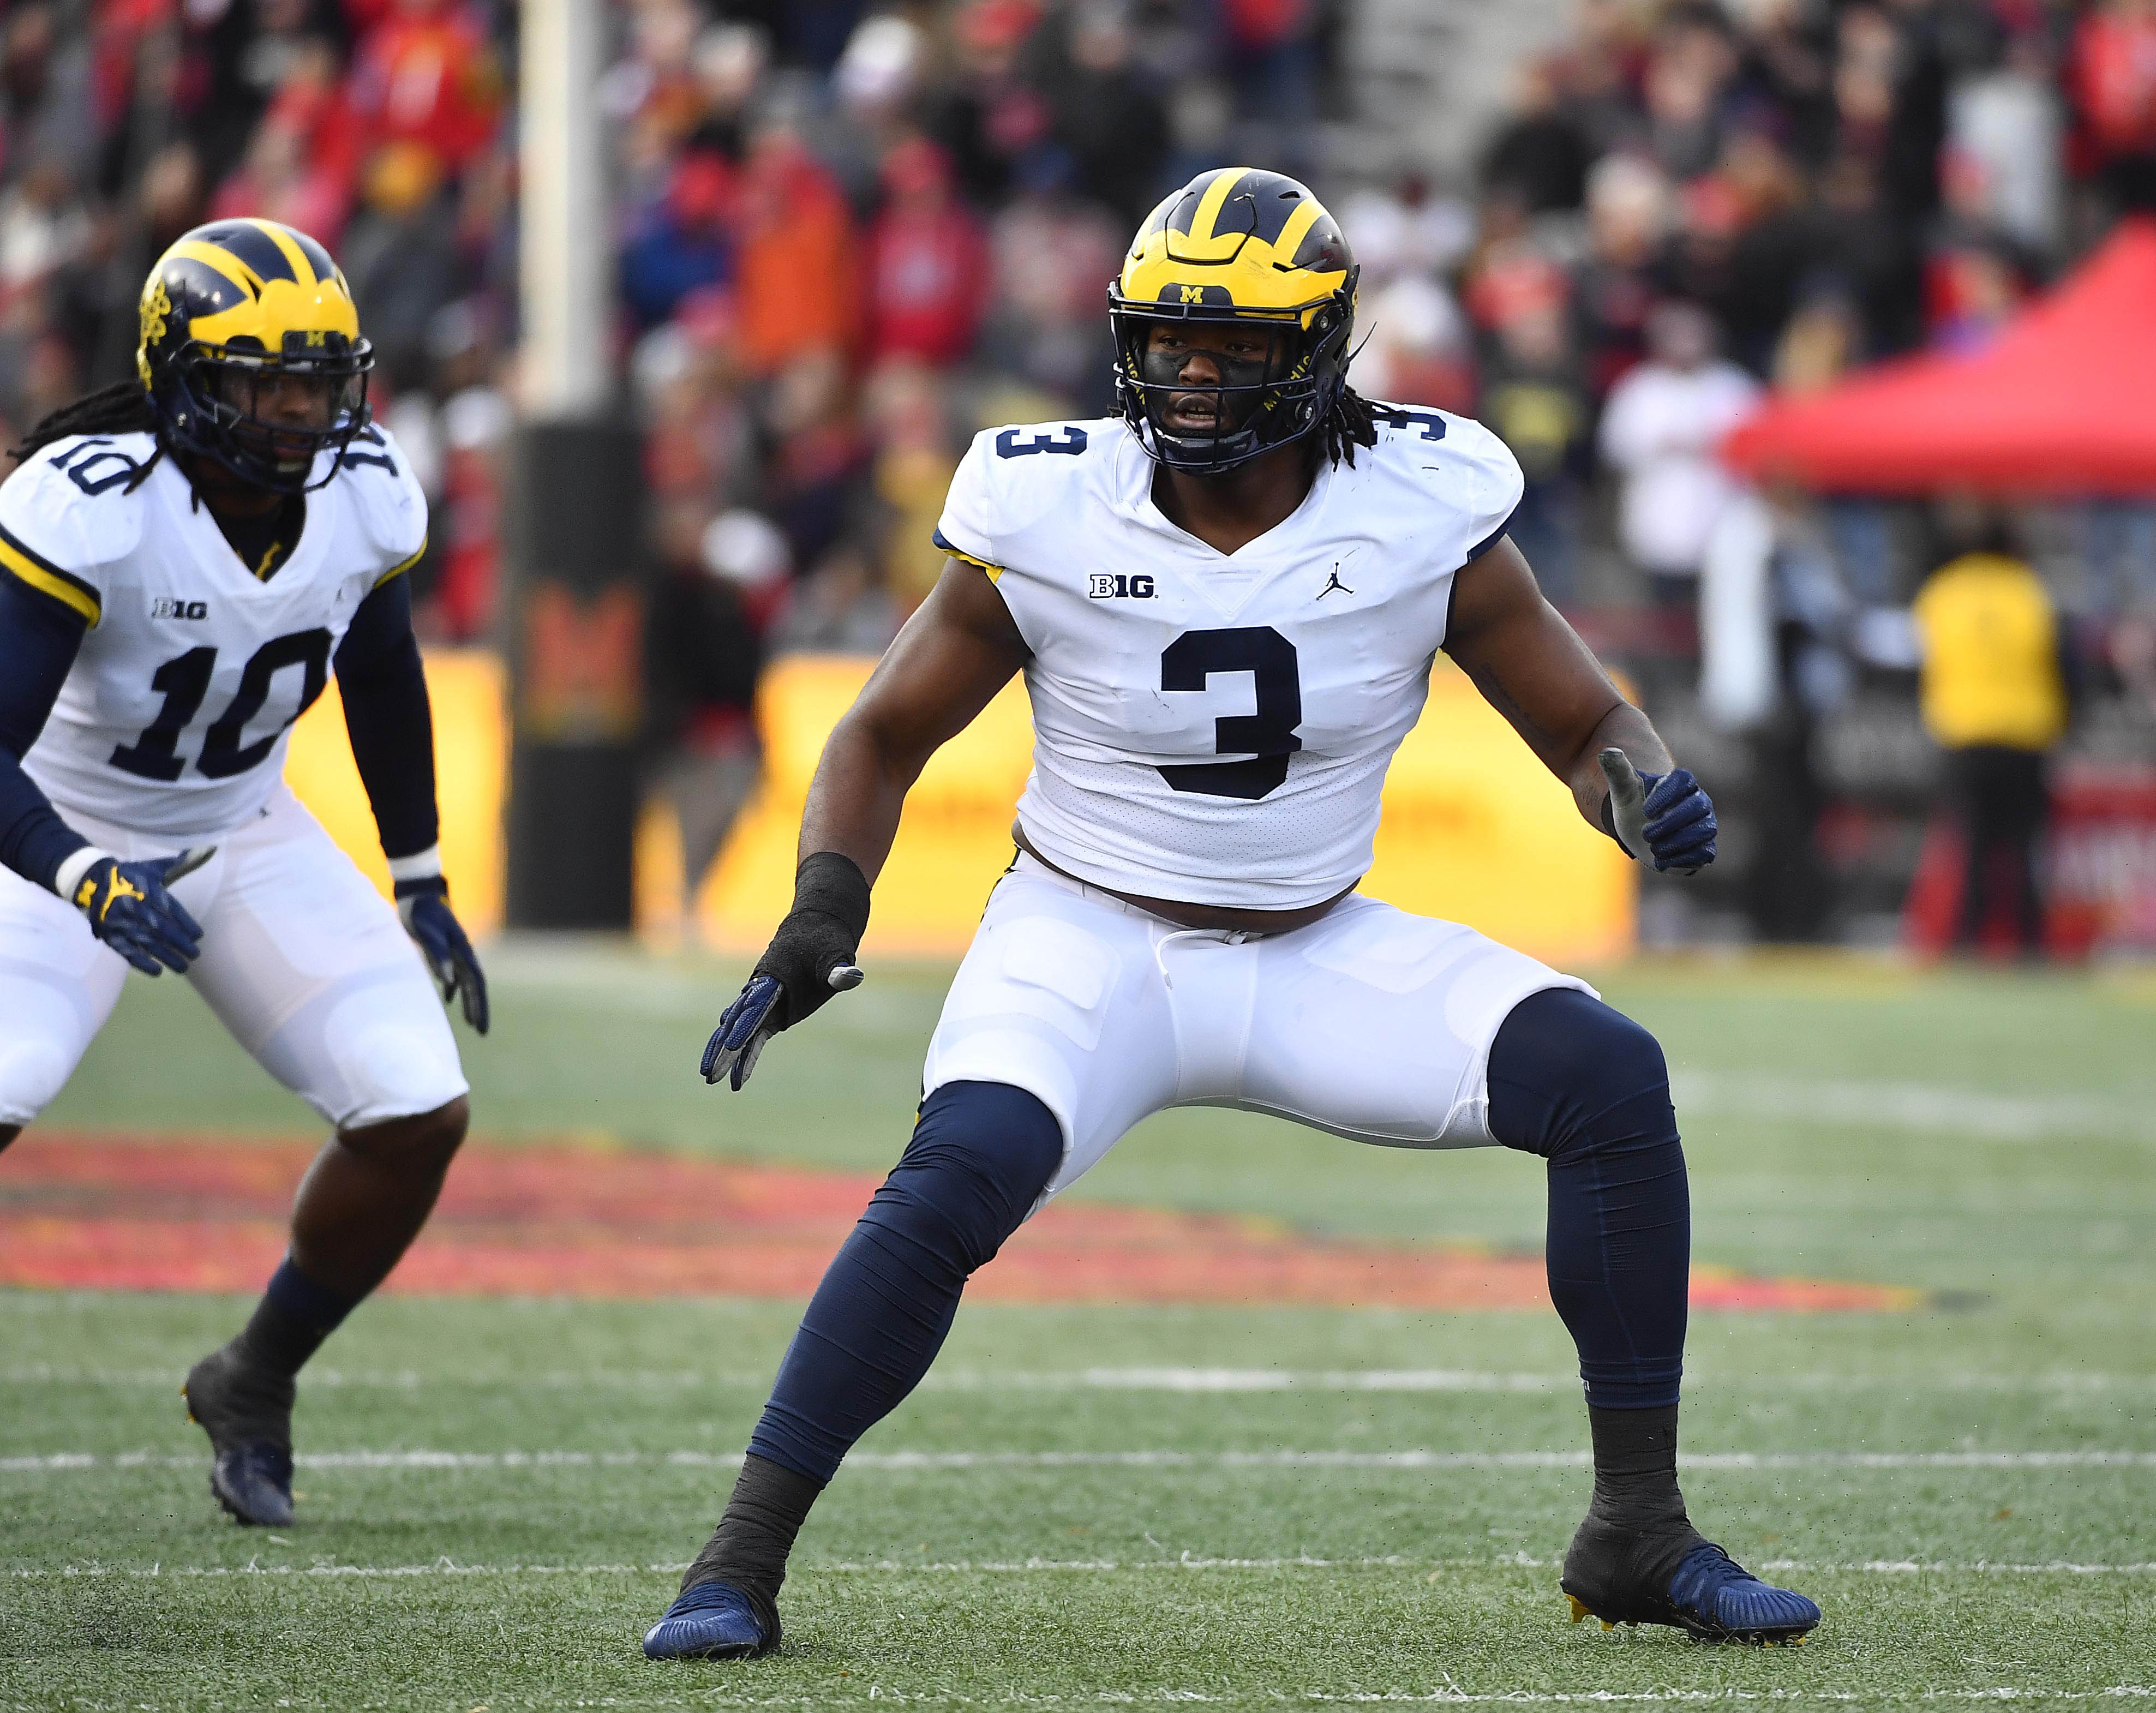 Packers' Top Pick Rashan Gary Could Be Feast or Famine